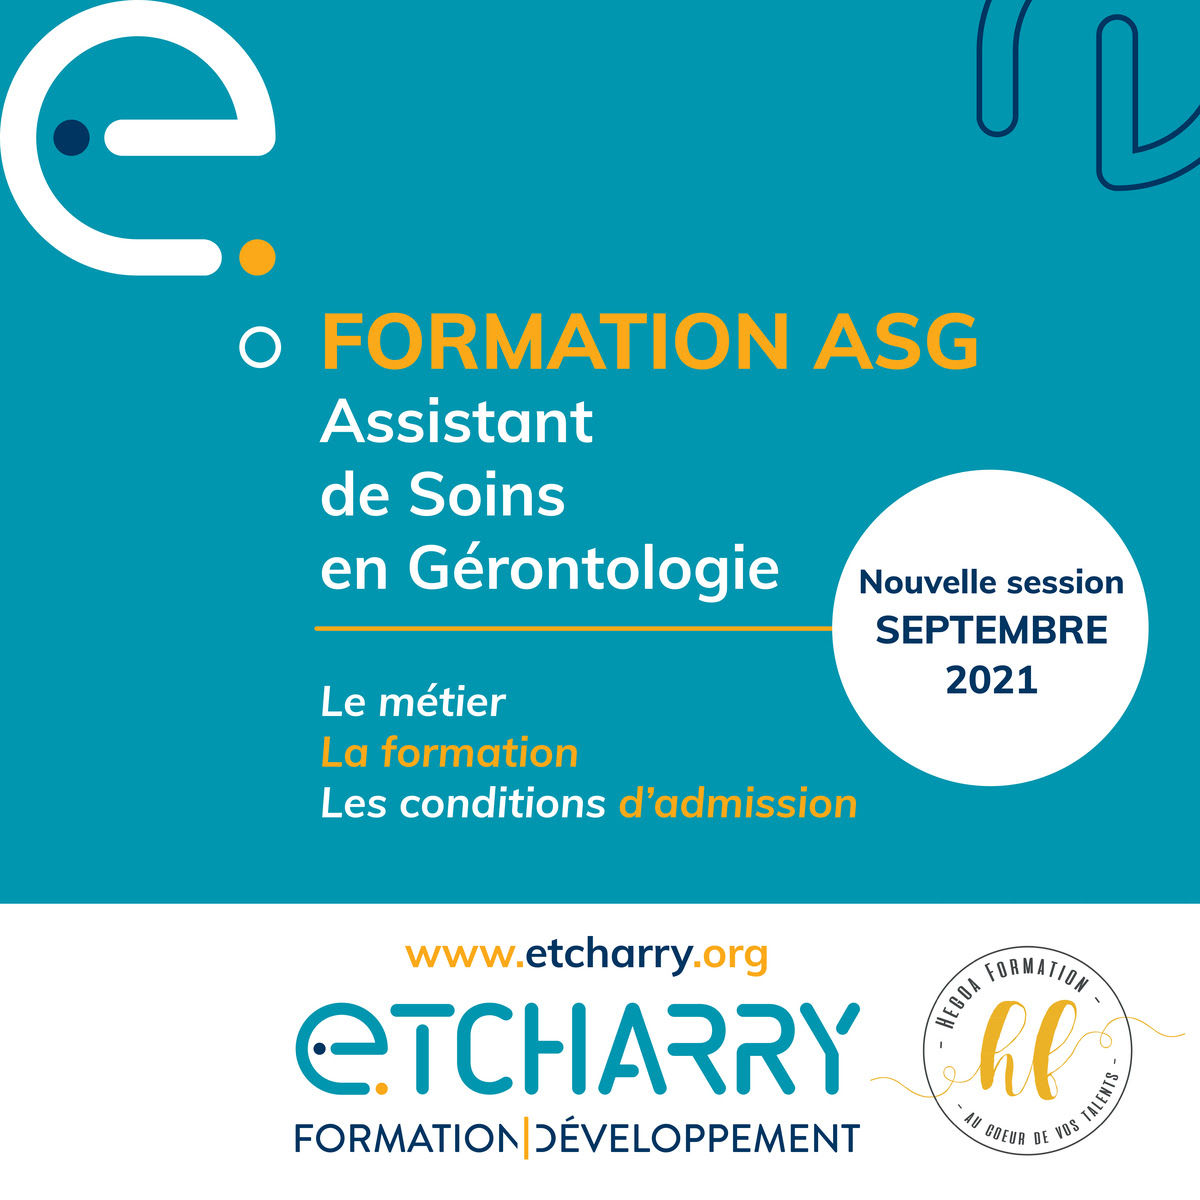 FORMATION ASG